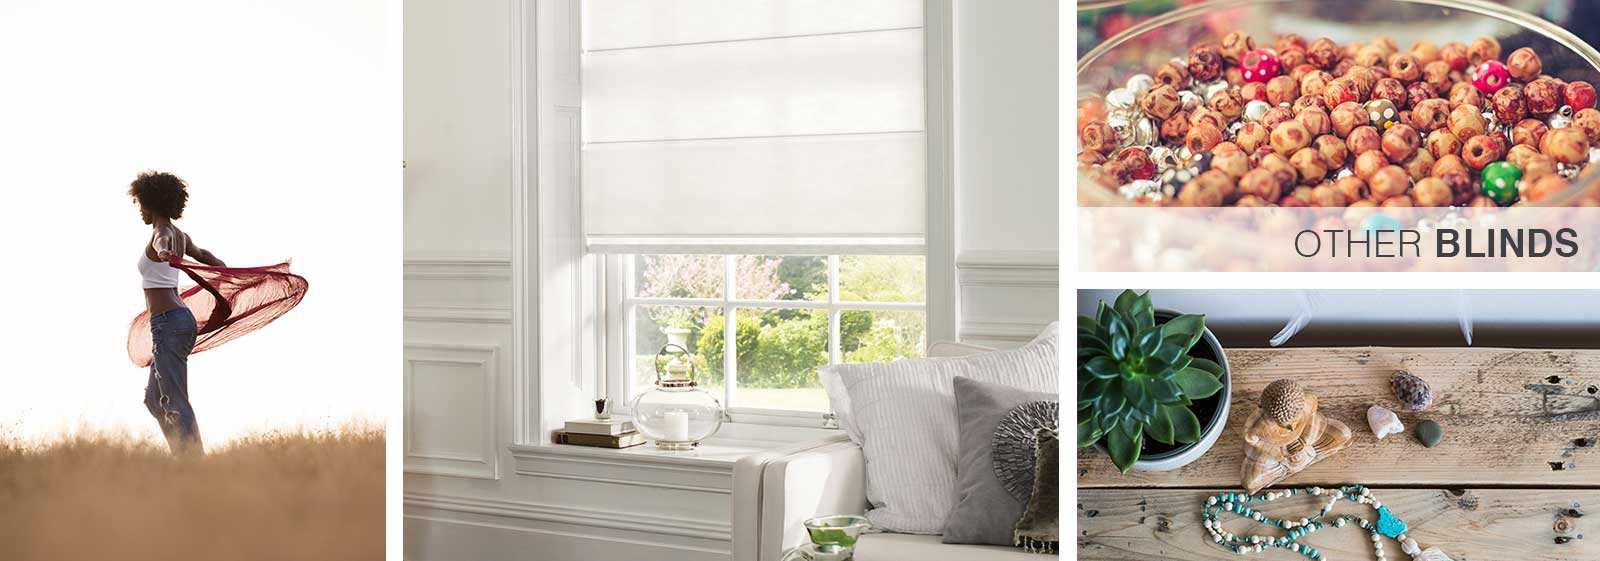 All Blinds, Other Blinds, Blind Designs